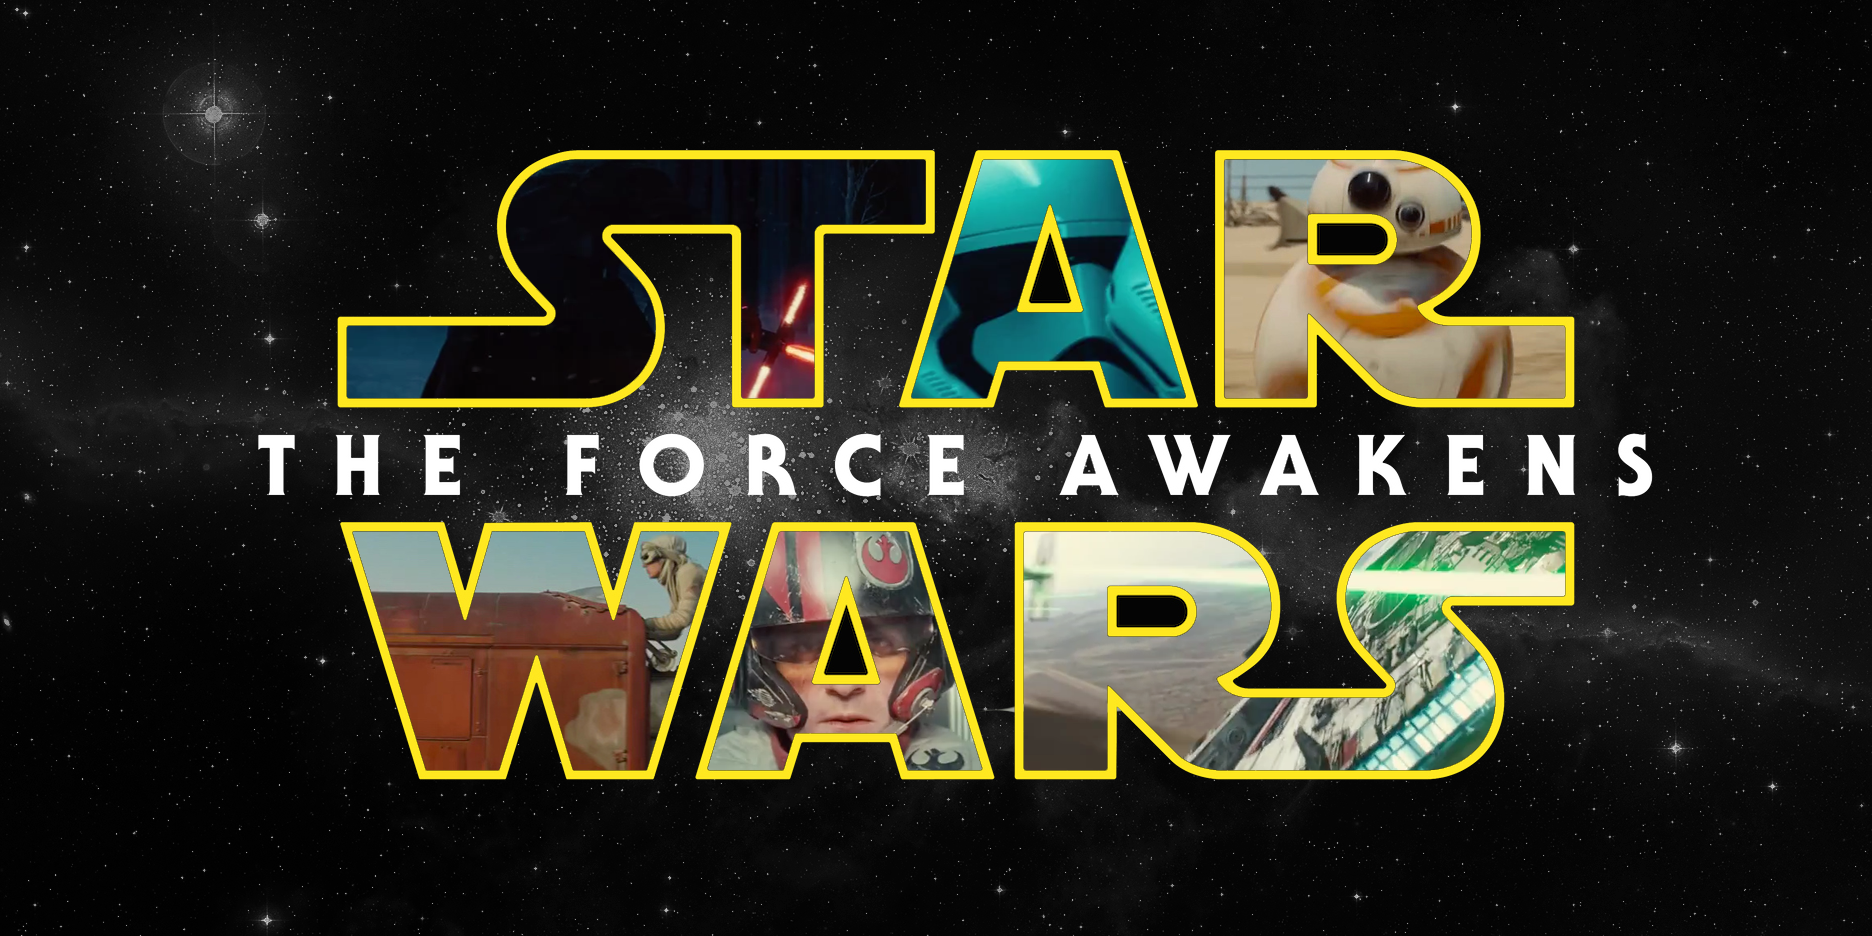 Win some spoiler-free Star Wars: The Force Awakens goodies